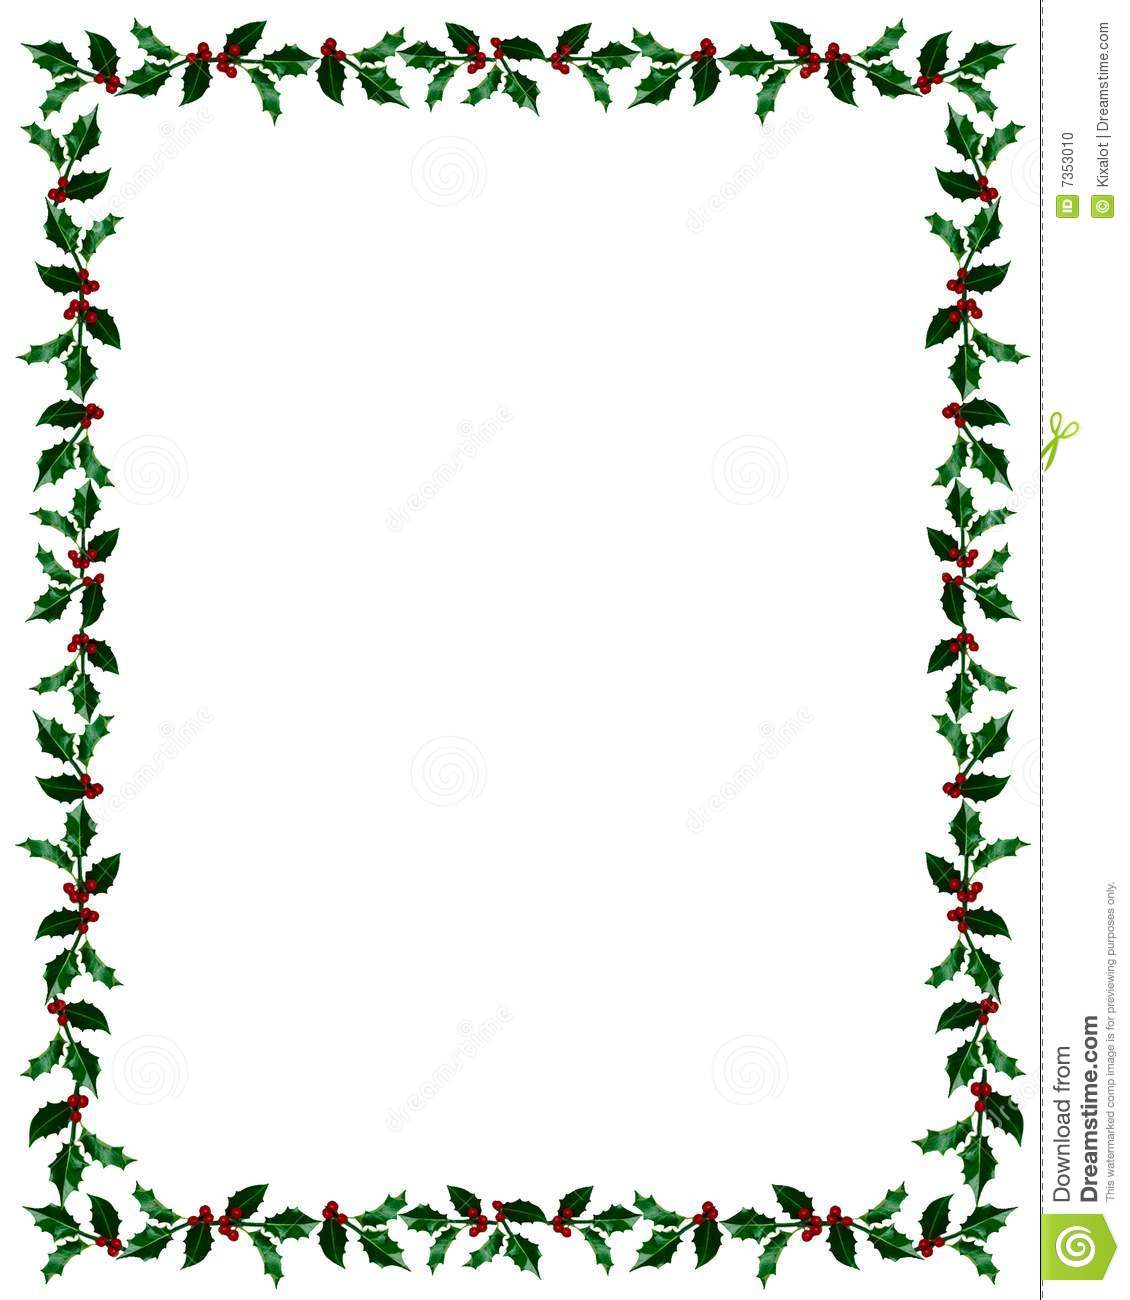 Holiday Border Suitable For Christmas Messages And Cards Featuring